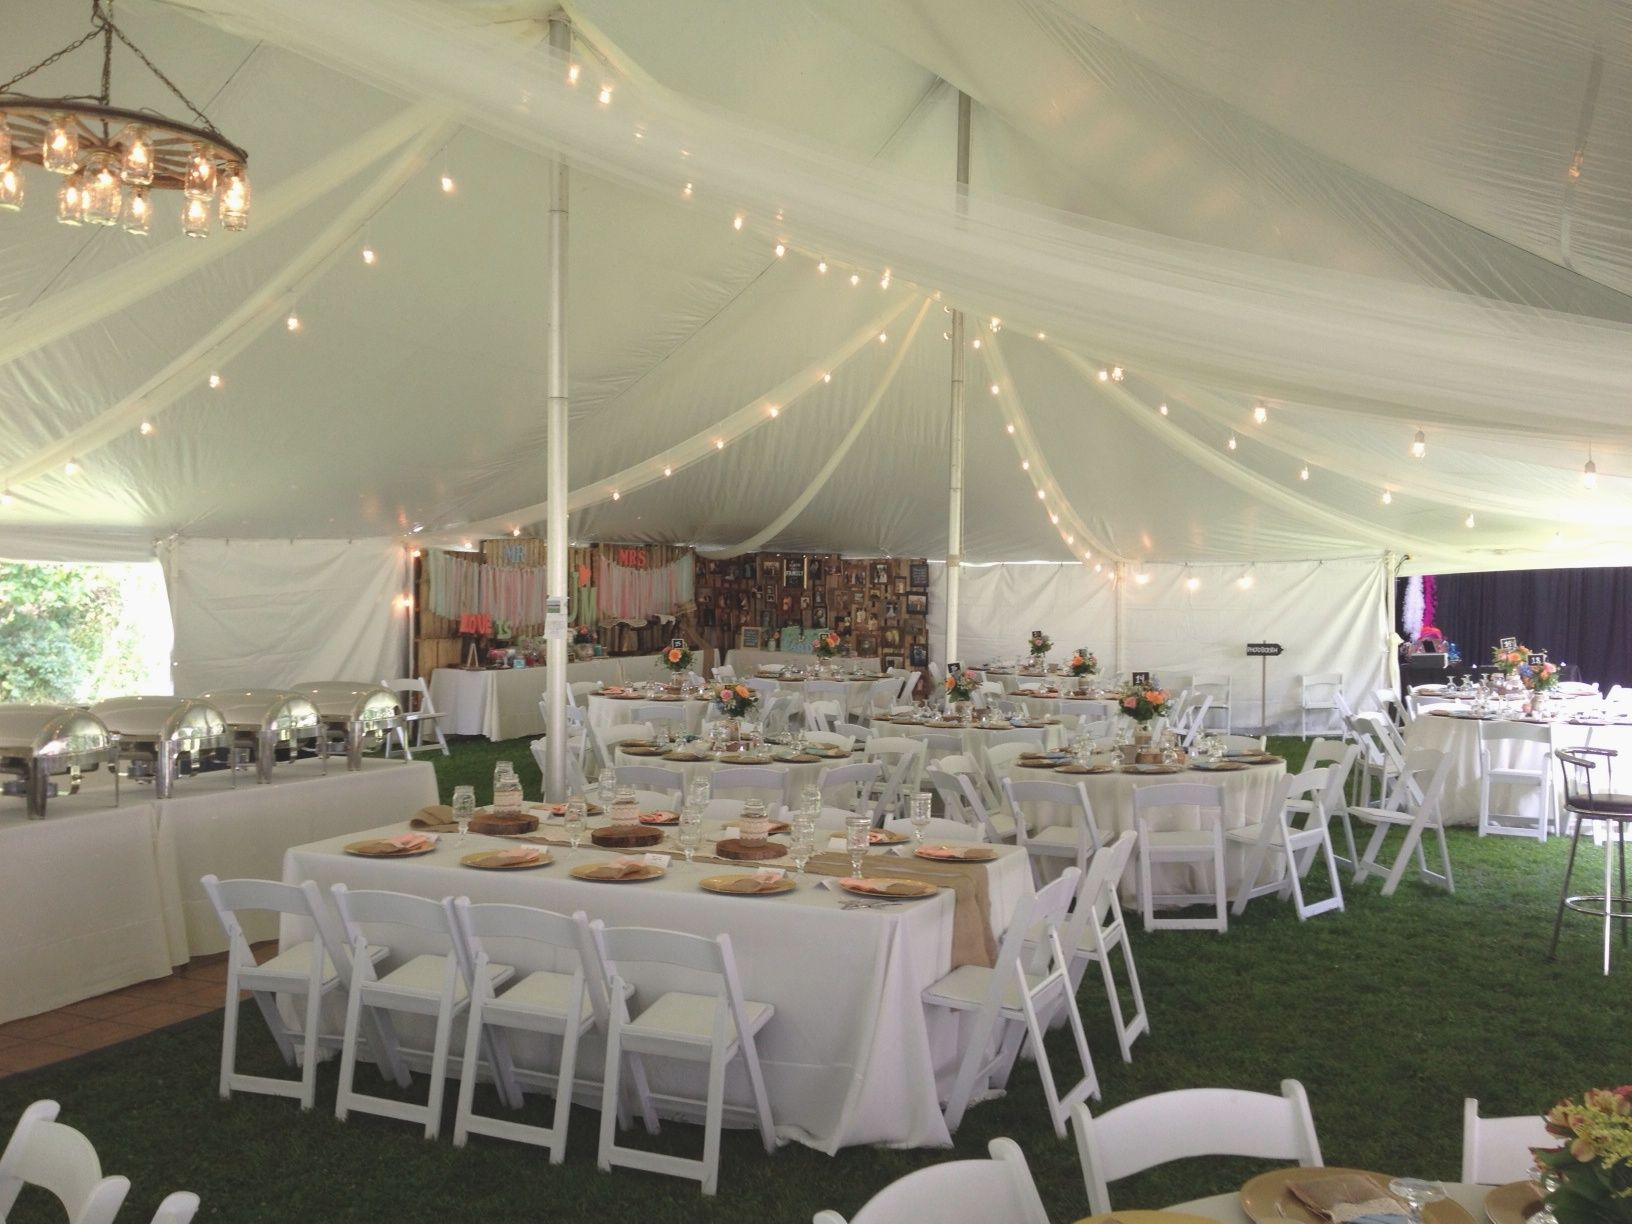 Italian bistro cafe string light rental for wedding reception in - Find This Pin And More On Rental Tents